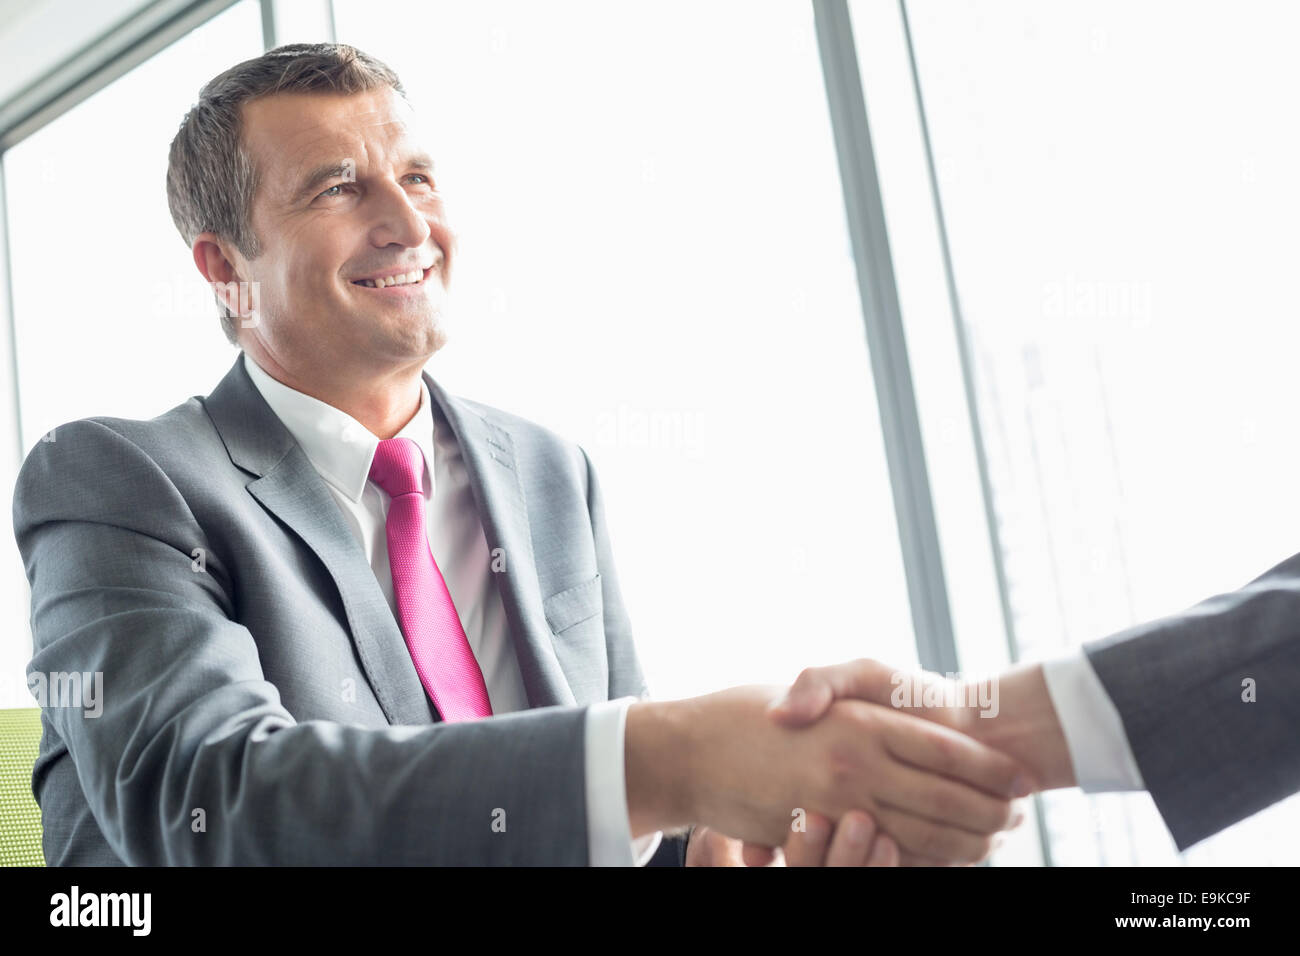 Smiling mature businessman shaking hands with partner in office - Stock Image